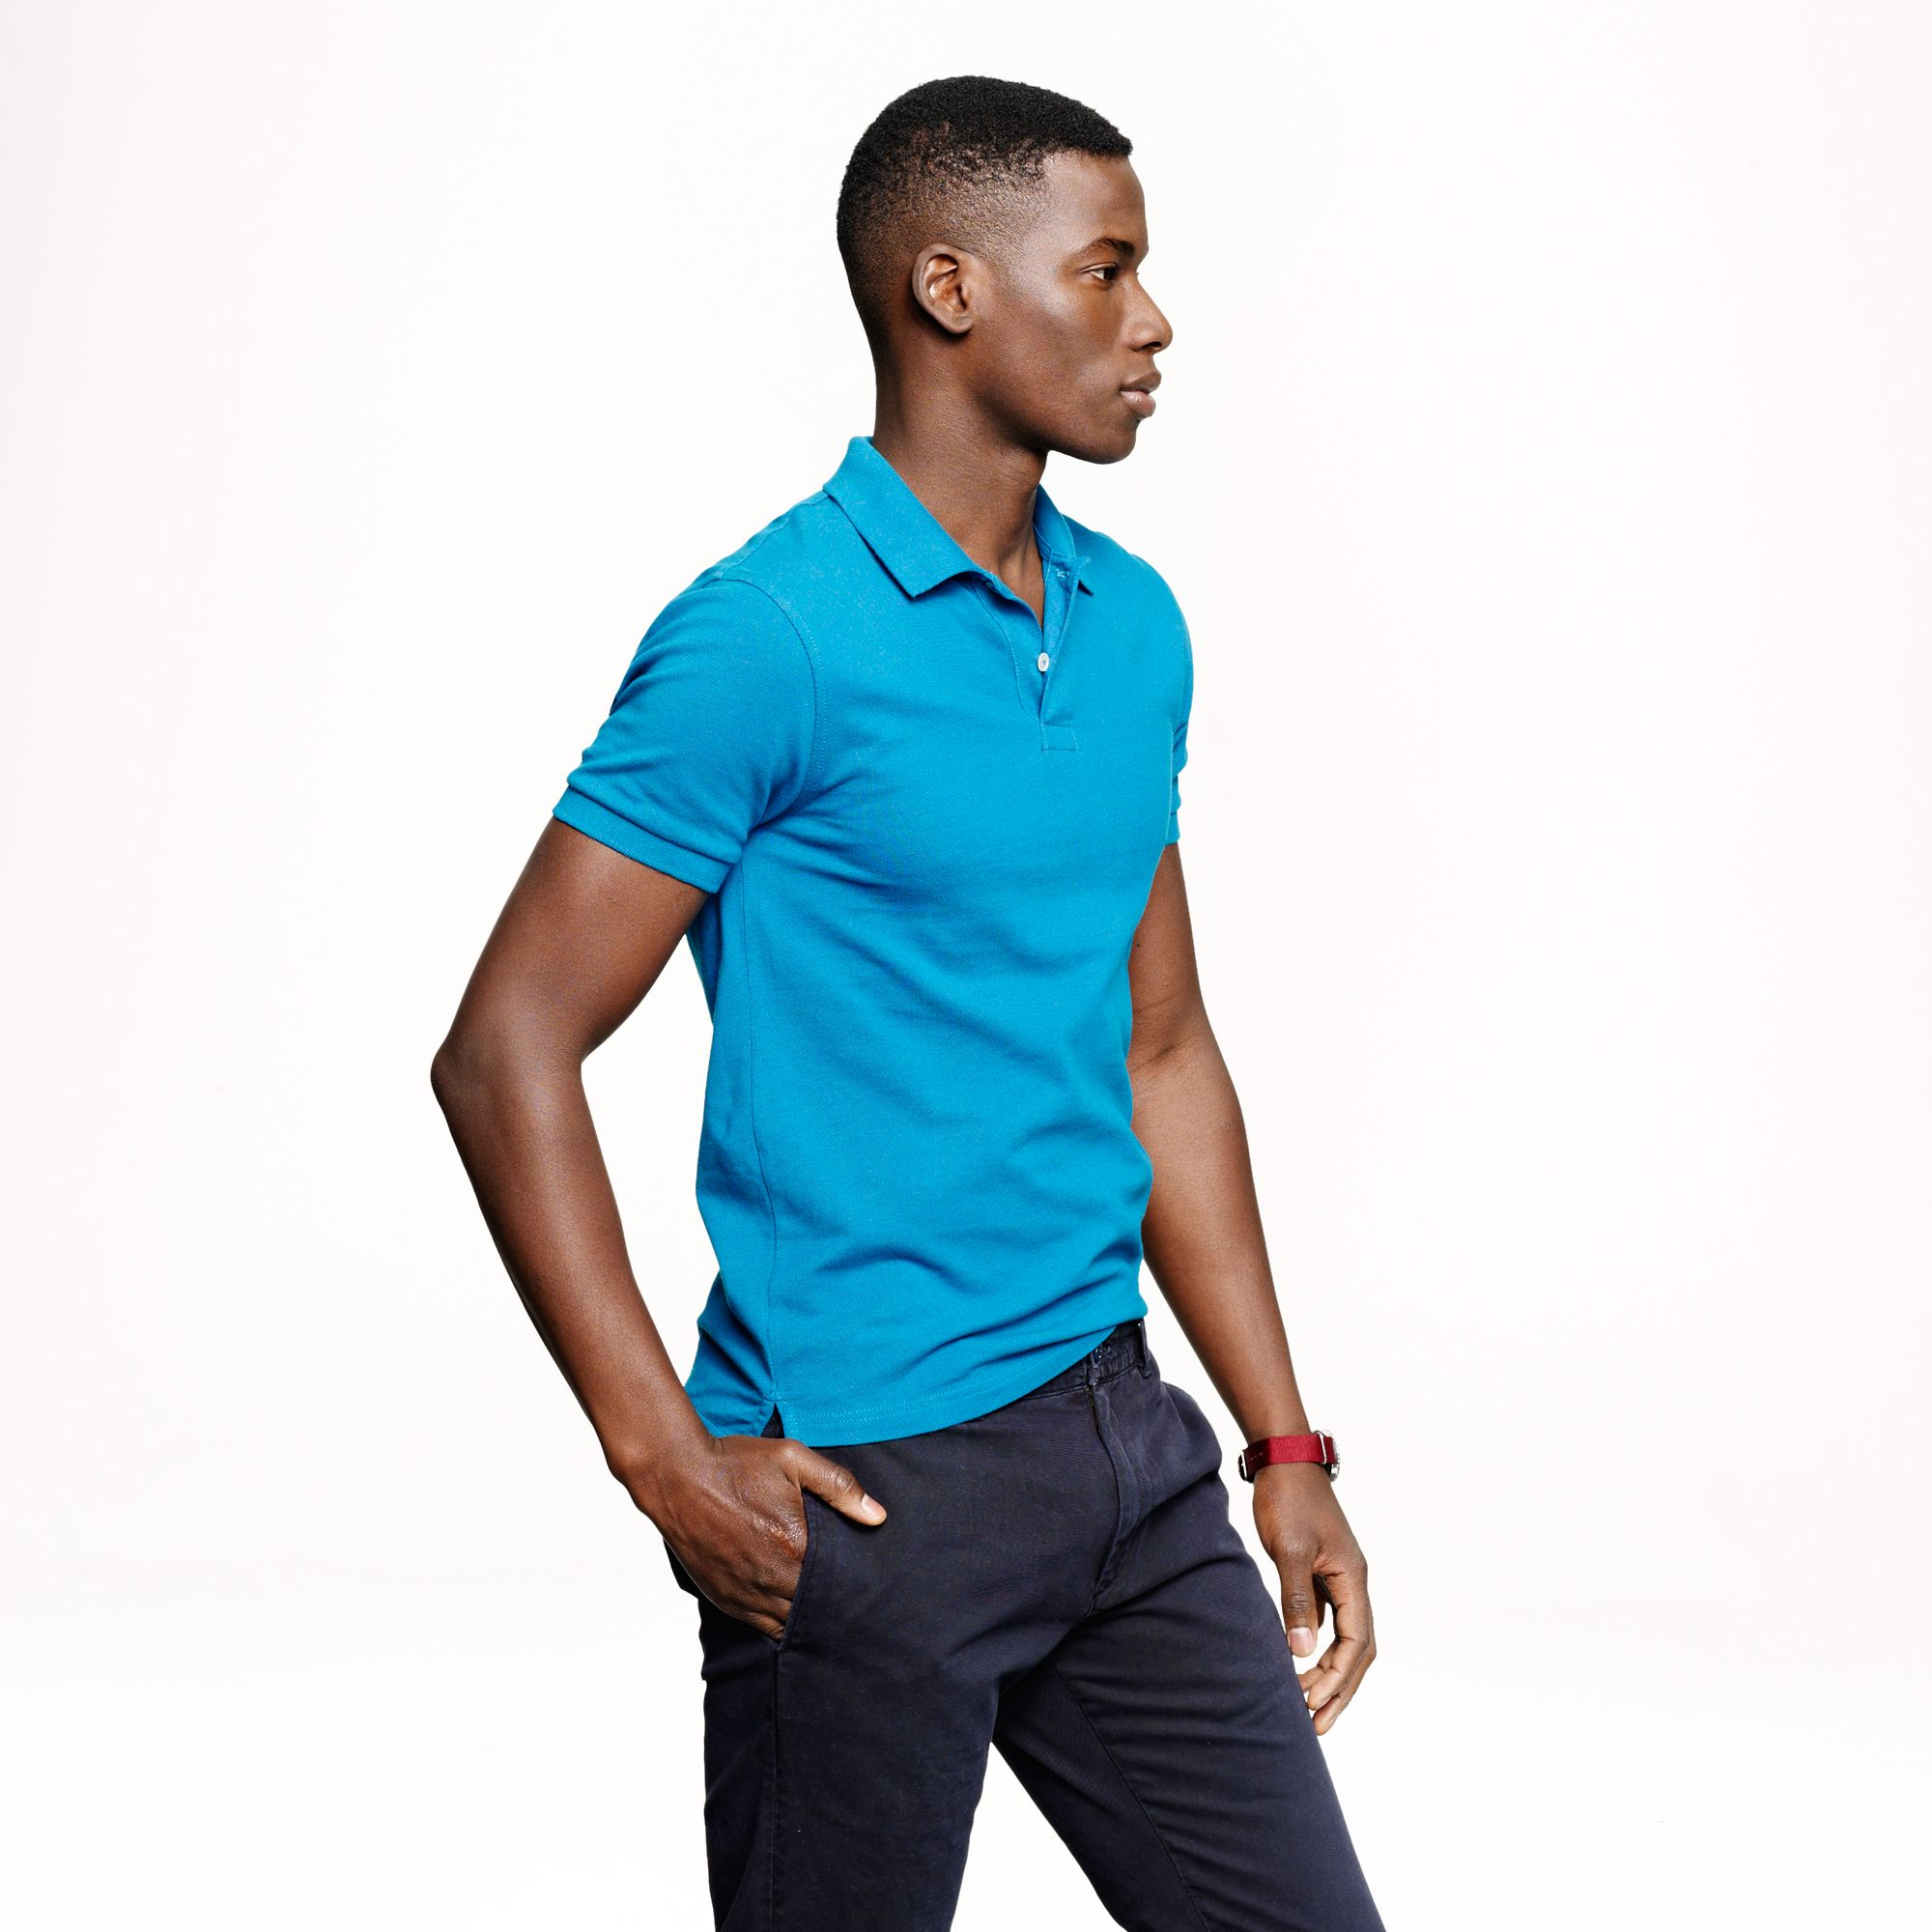 a73bbff6c J.Crew Slim Classic Piqué Polo in Blue for Men - Lyst